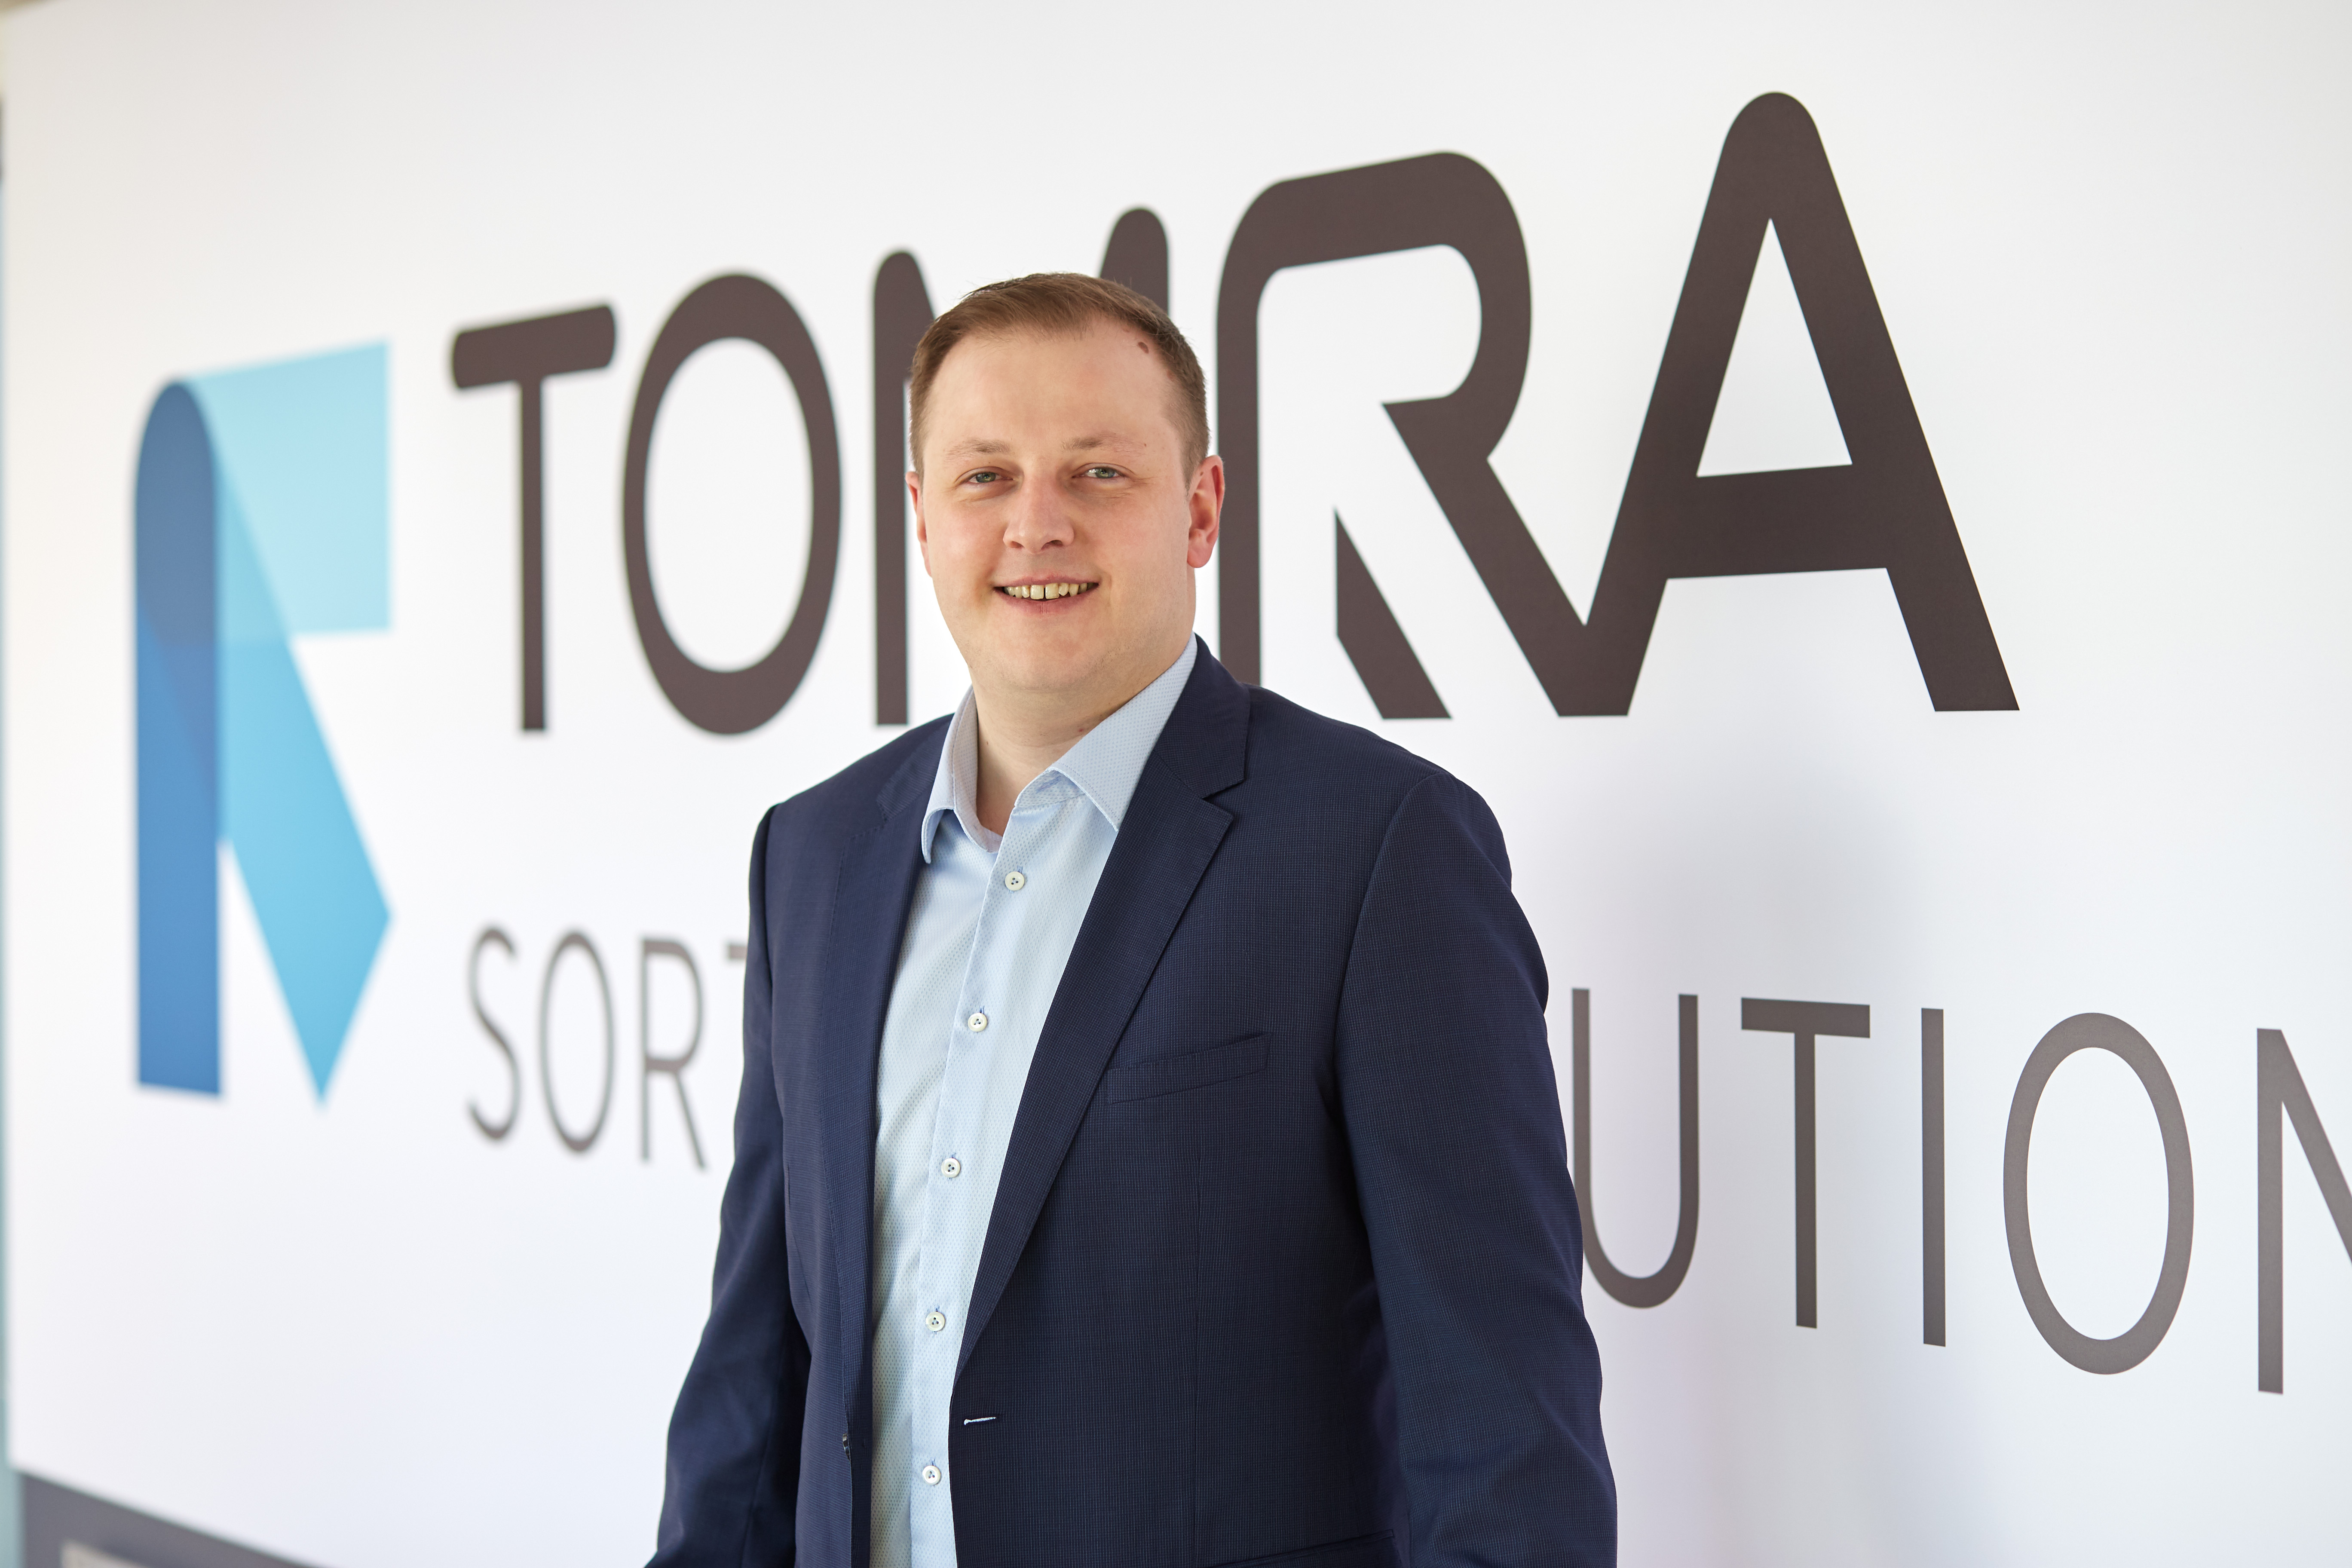 László Székely, VP Head of Plastic Applications at TOMRA